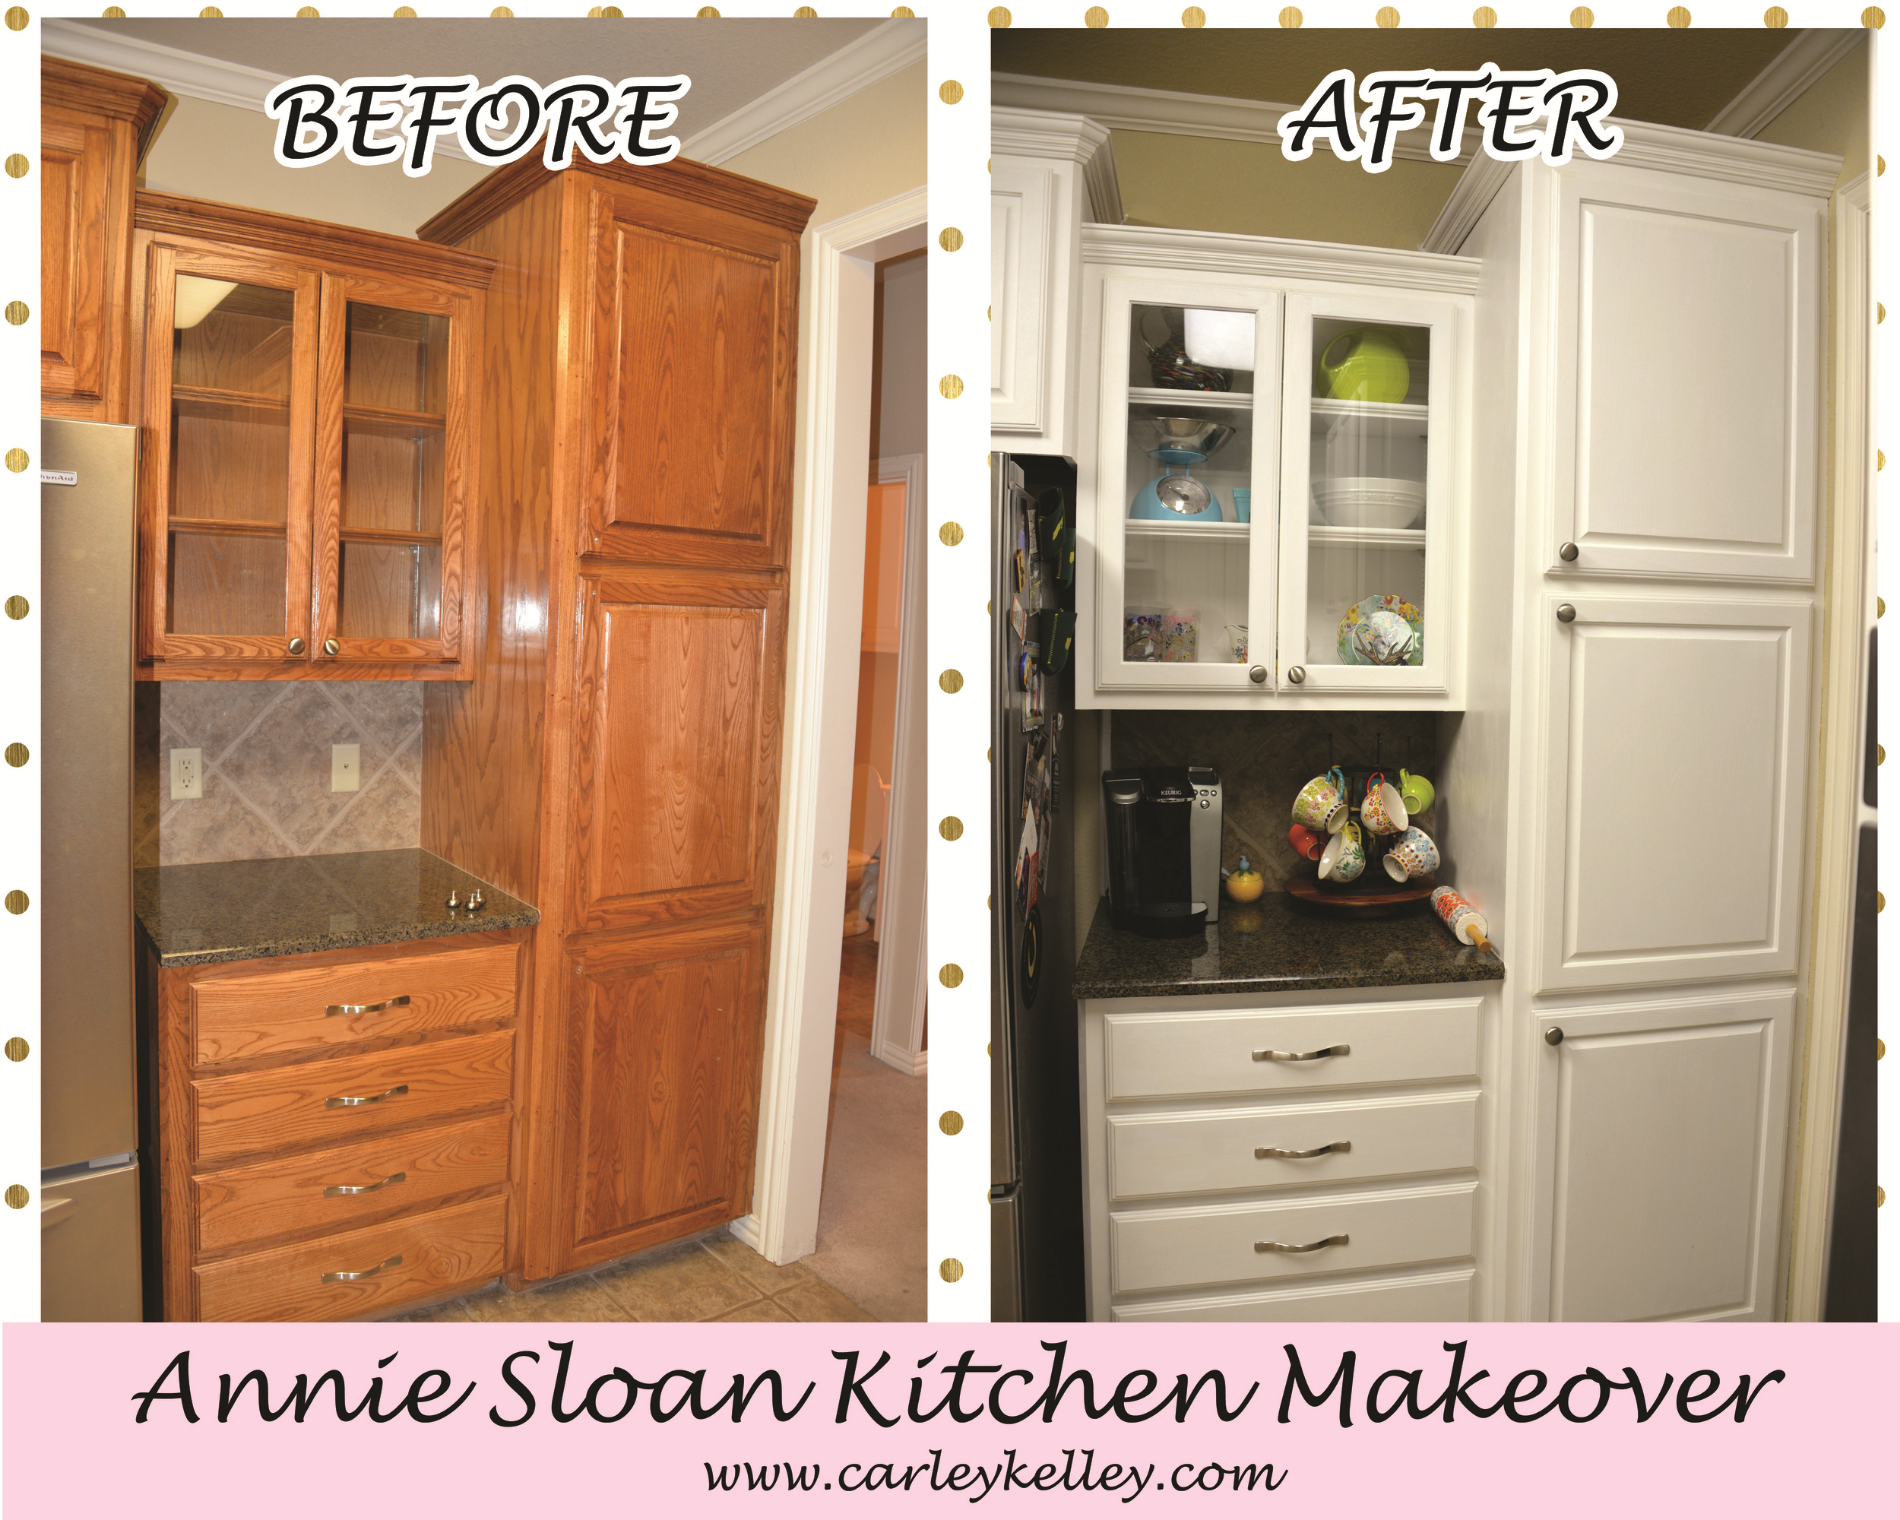 Annie Sloan Kitchen Makeover Carley Kelley